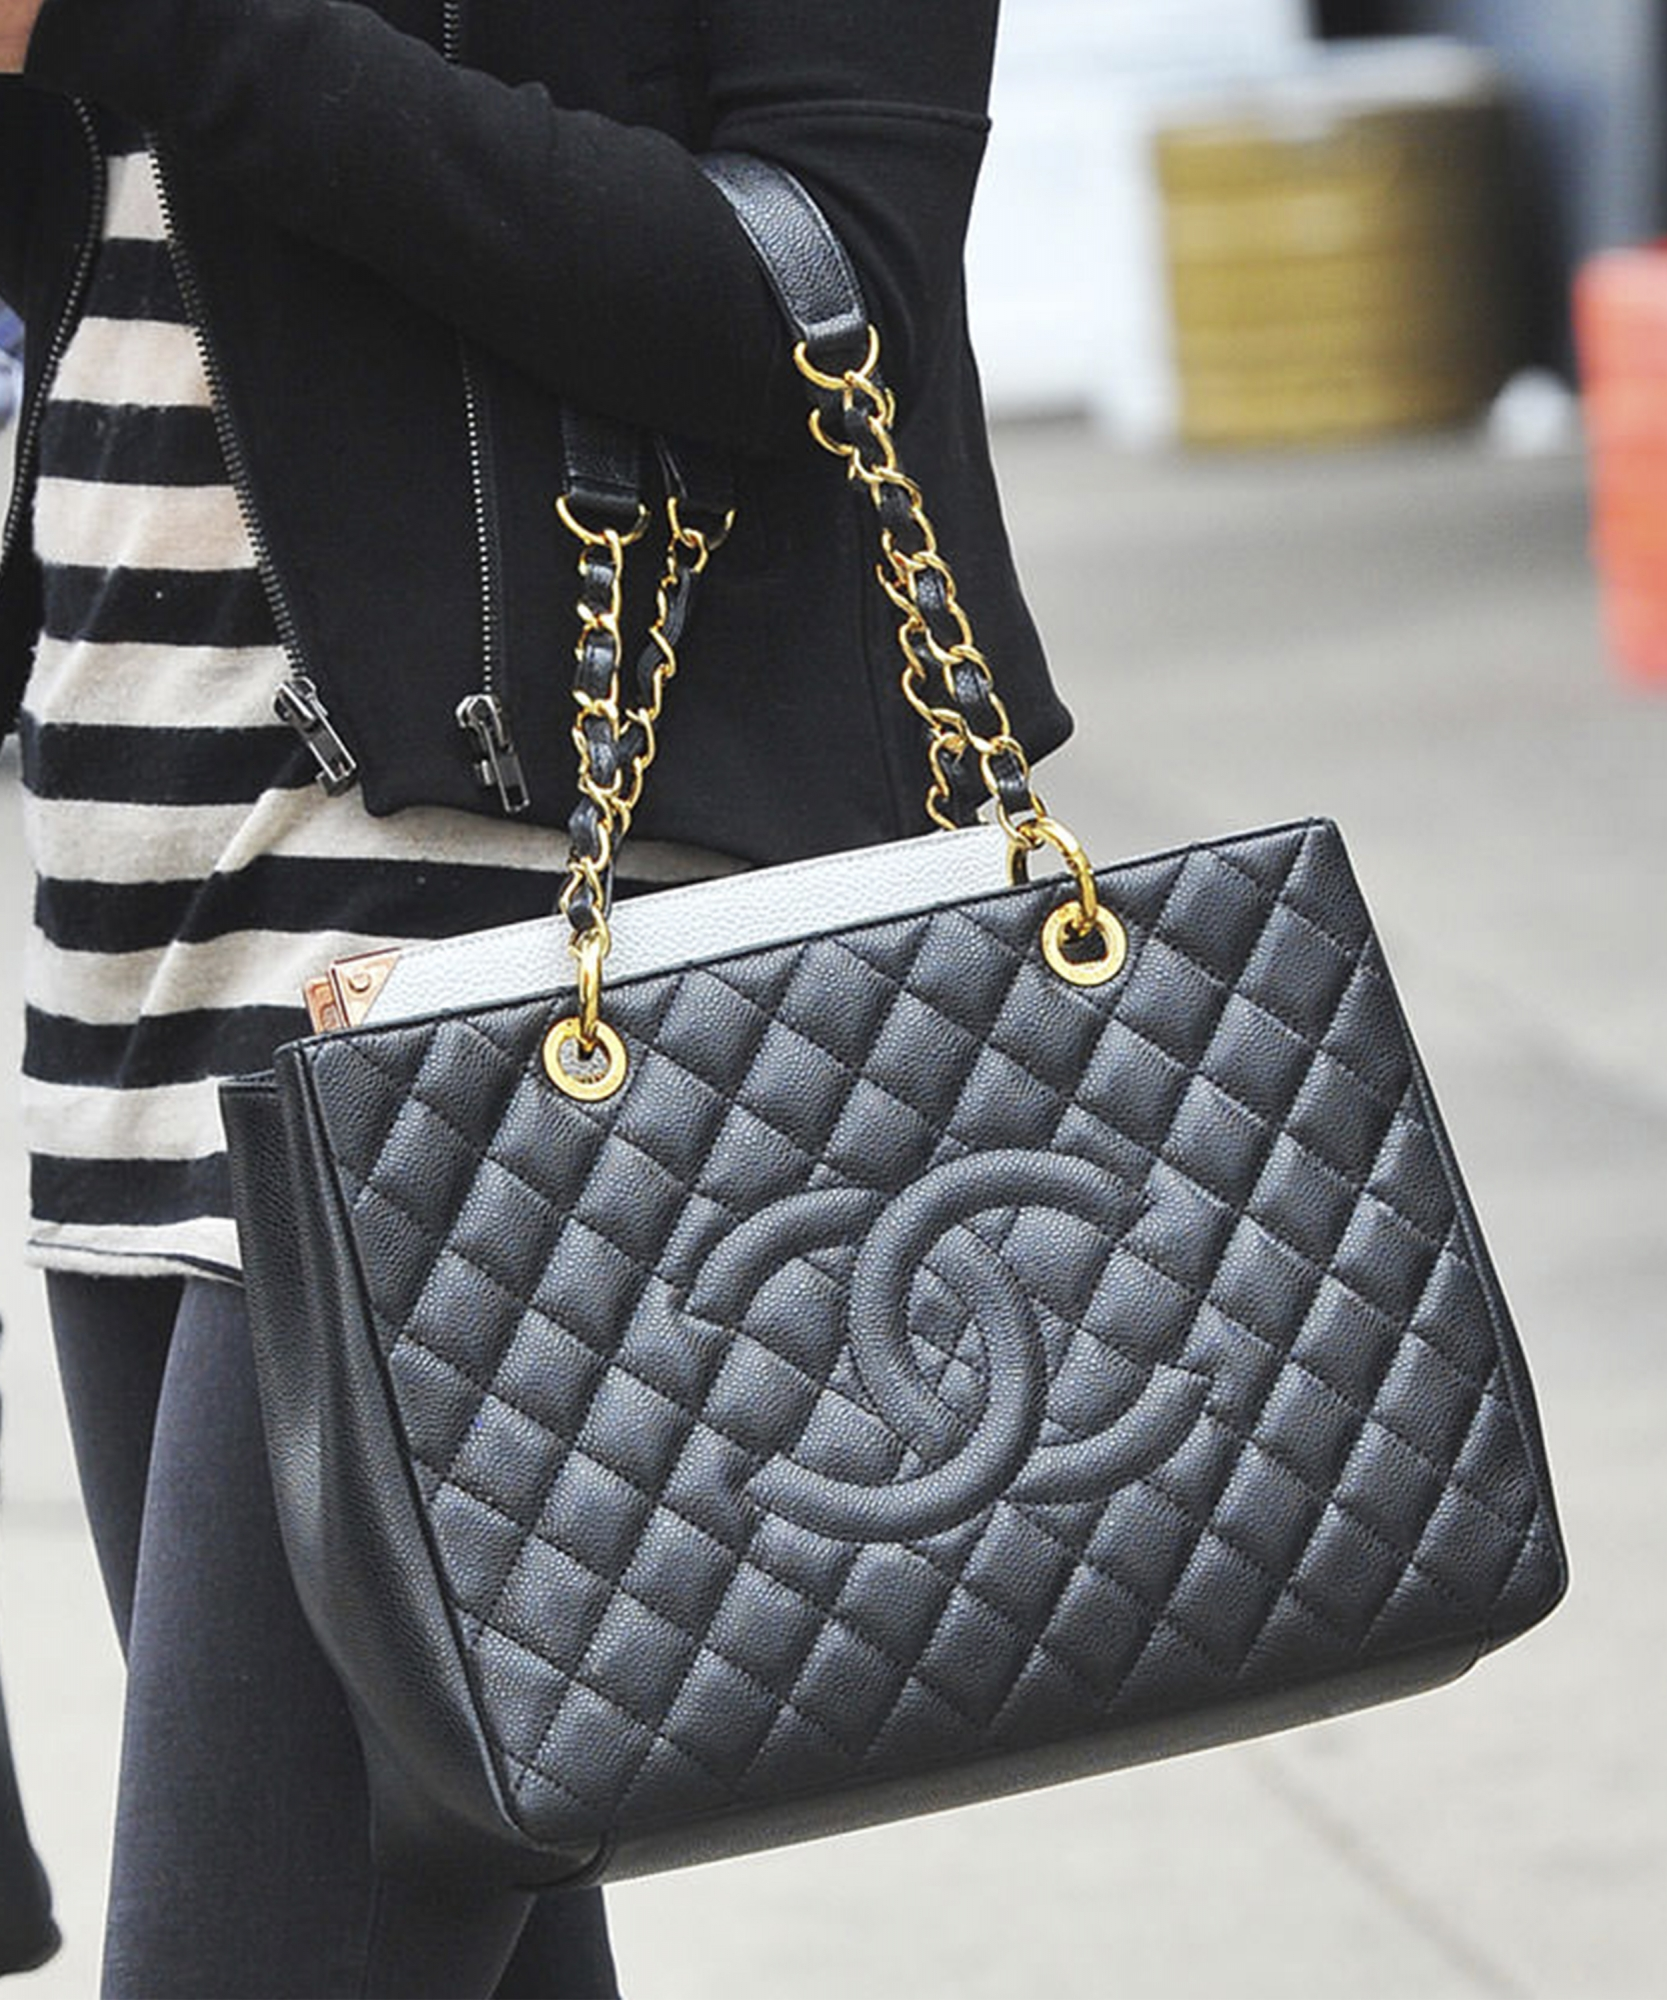 358e0dfab61d Home · Bags · Totes  Chanel Black Caviar GST Grand Shopping Tote GHW. Tap  to expand